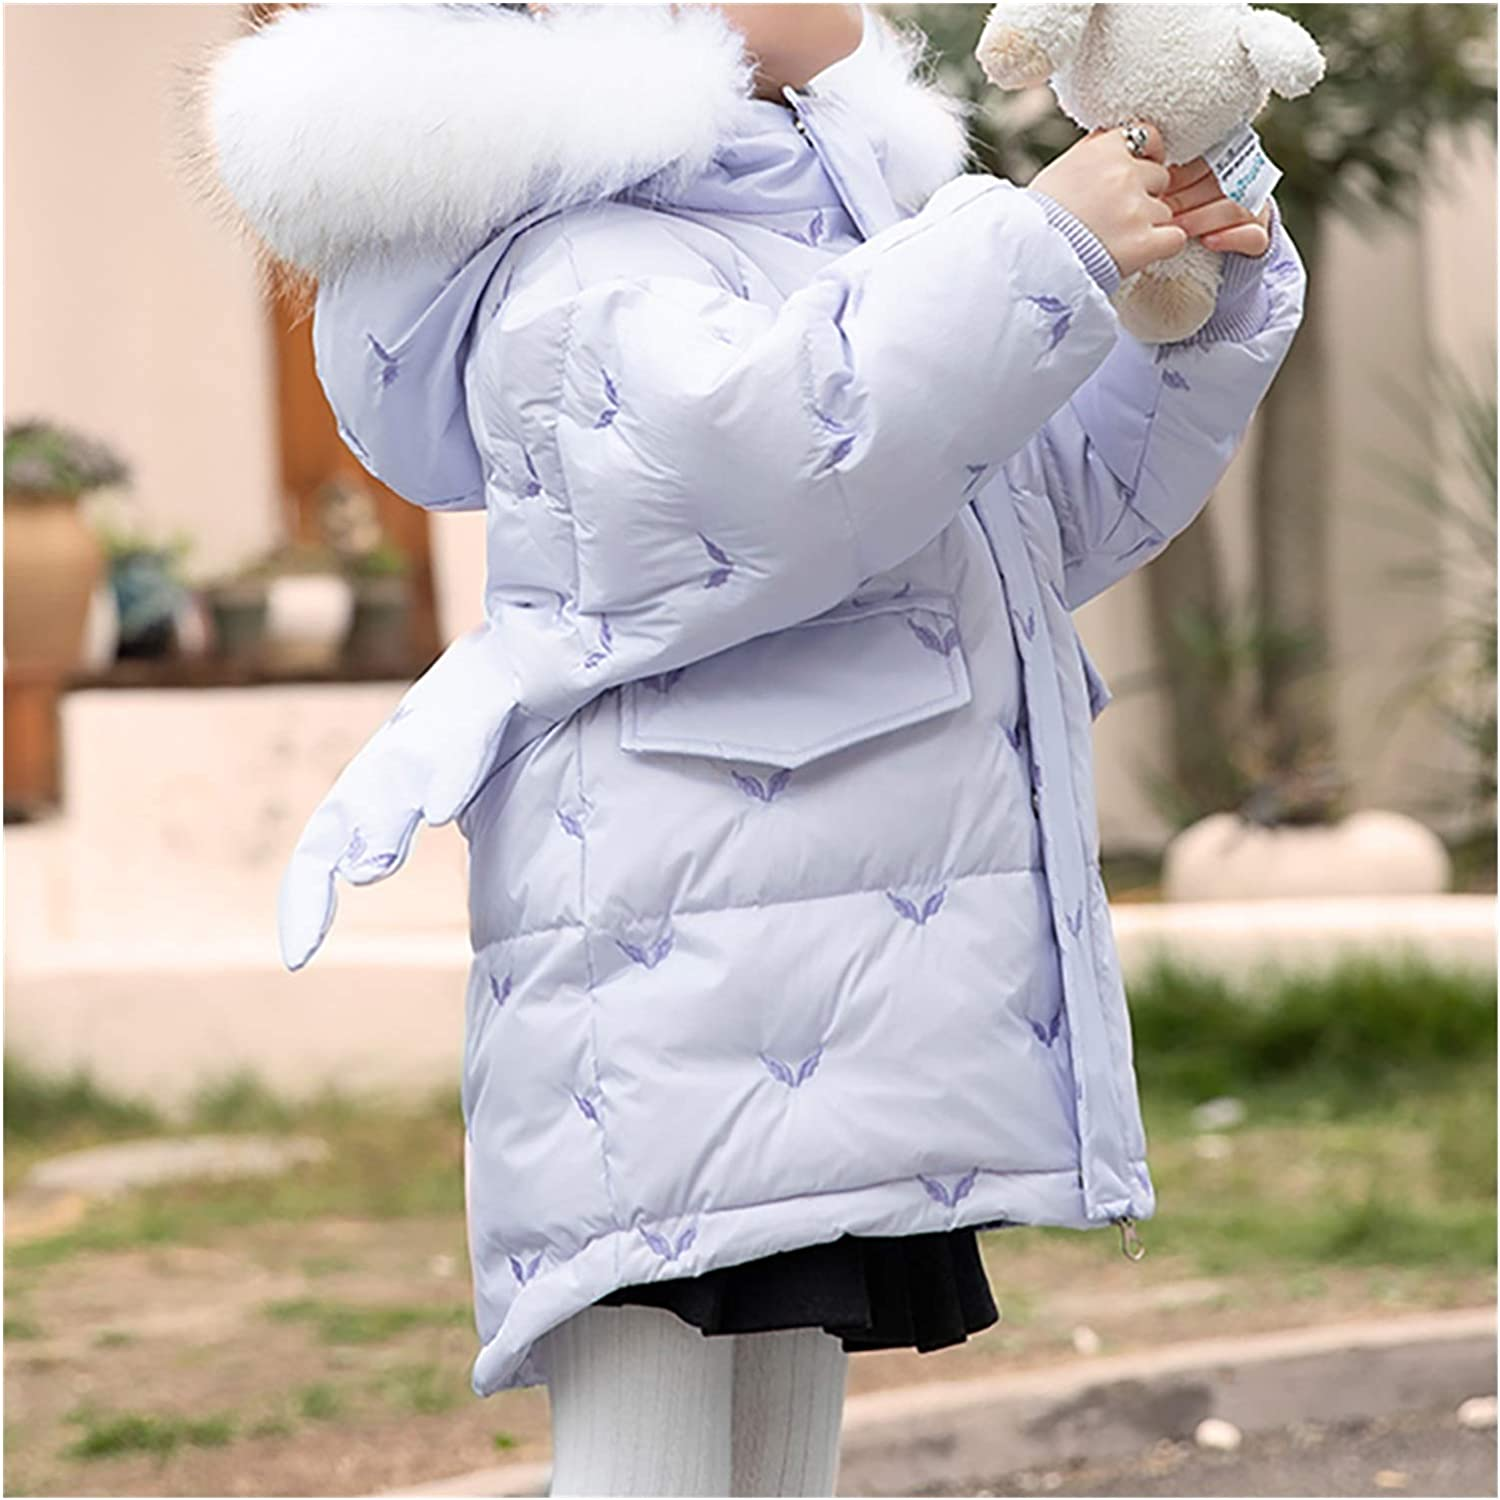 Kid Clothes Girls' Puffer Jacket with Hood Puffer Jacket Warm Outwear Winter Coat Outdoor Parkas Winter Jacket Skin Friendly (Color : Purple, Size : X-Large)